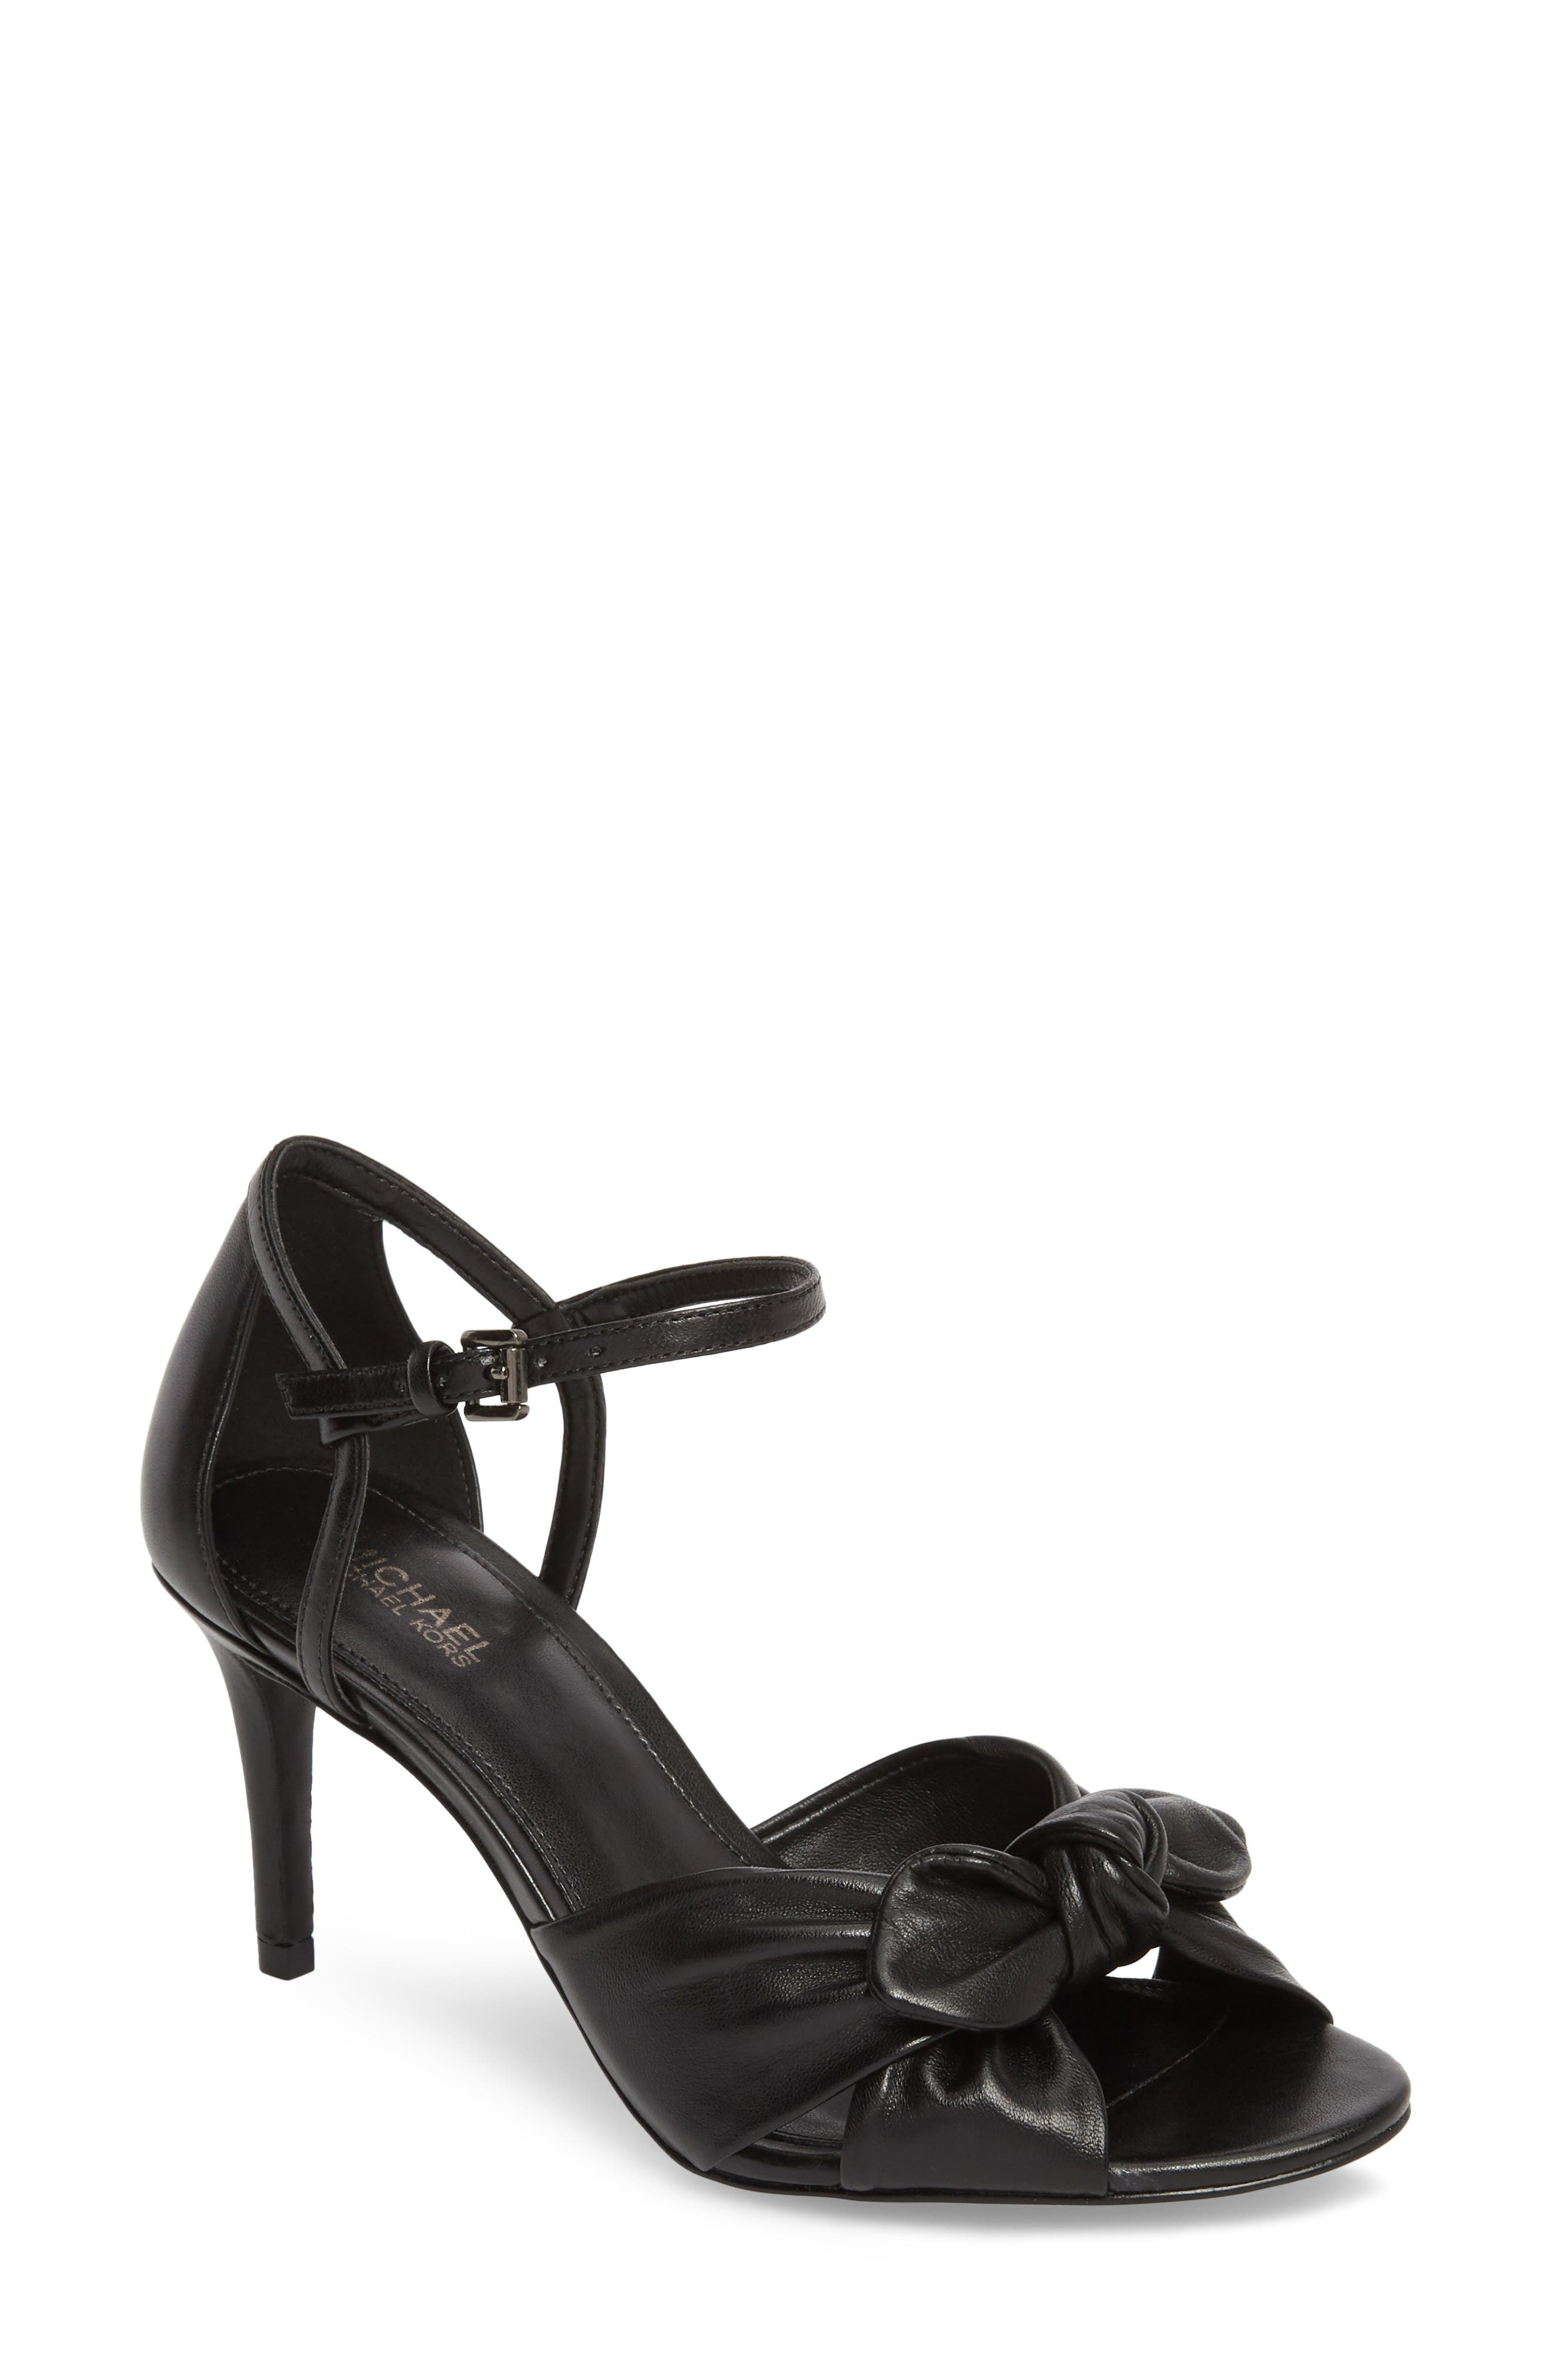 Pippa Sandal,                         Main,                         color, Black